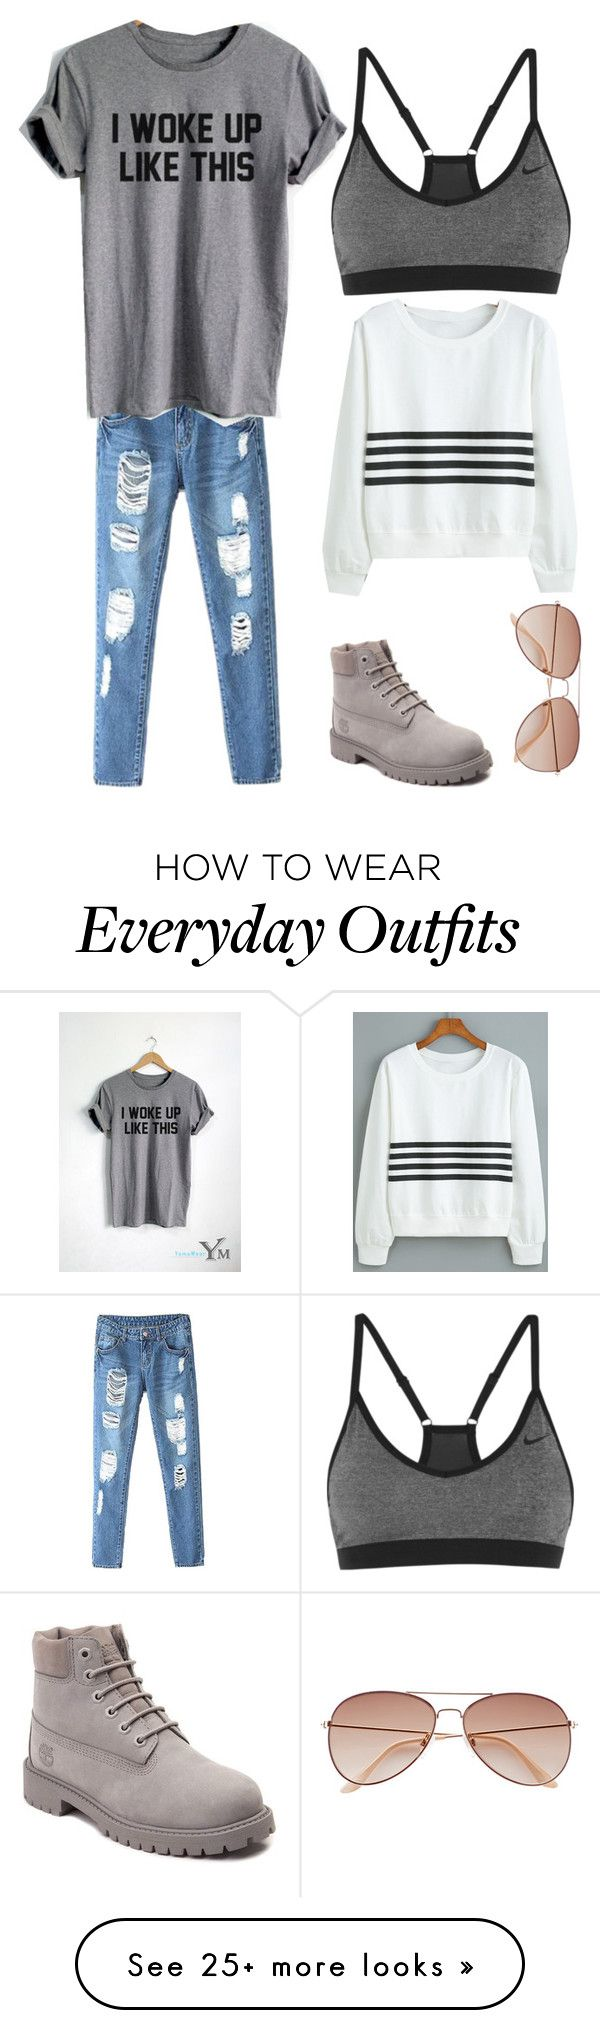 """Everyday outfit"" by libyk on Polyvore featuring NIKE, Timberland and H&M"